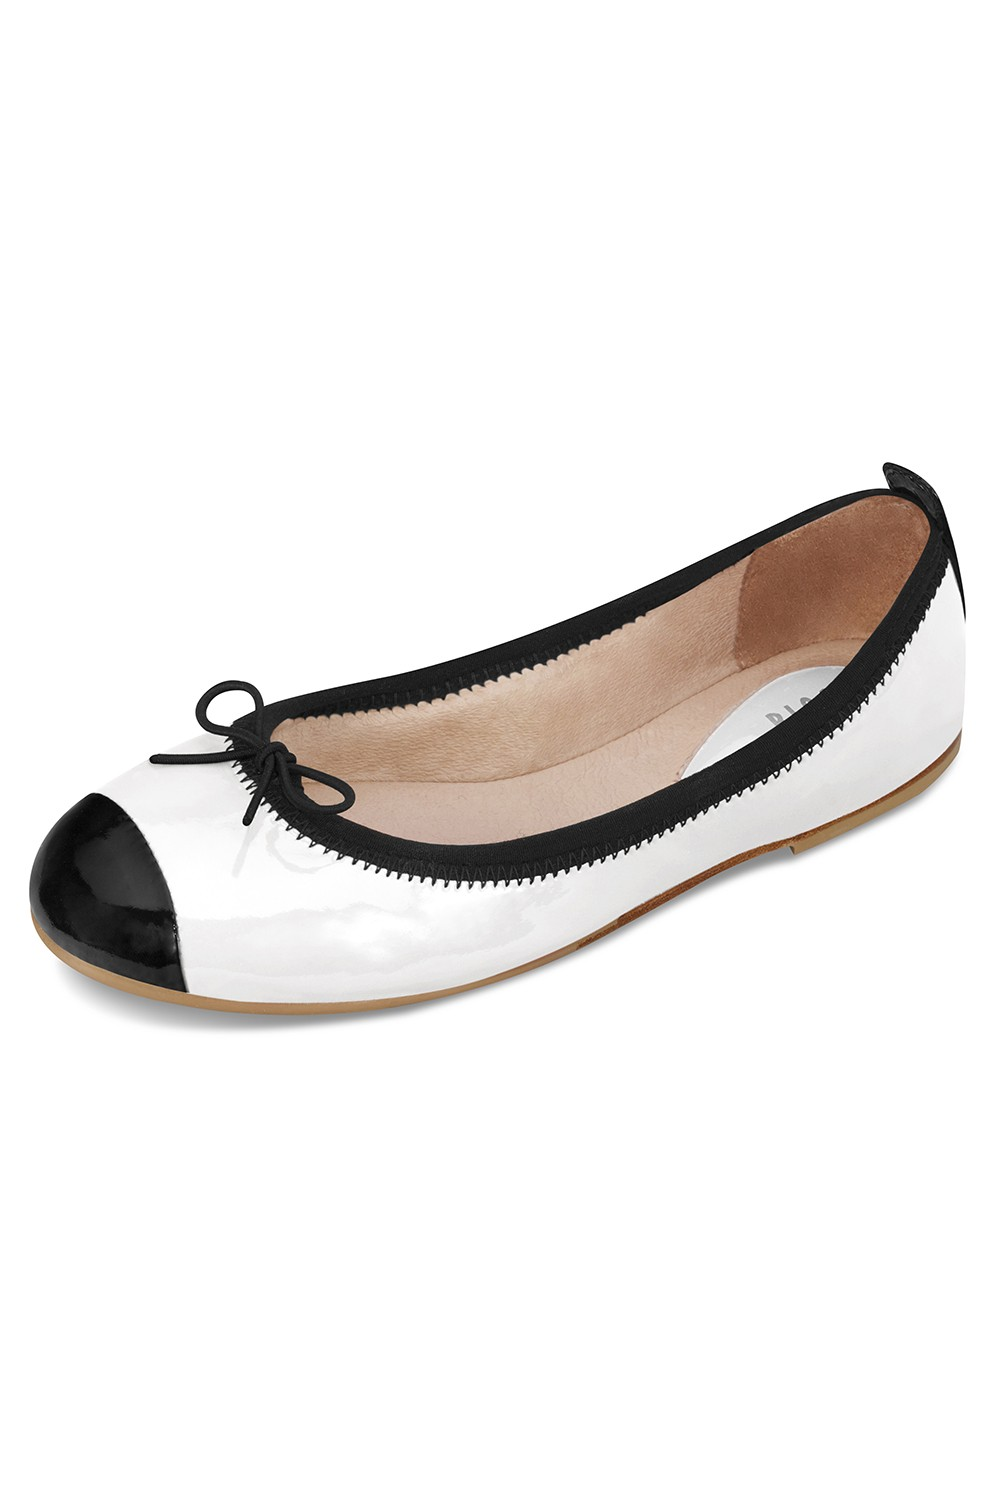 Luxury Leather Outsole -  Tween Girls Fashion Shoes